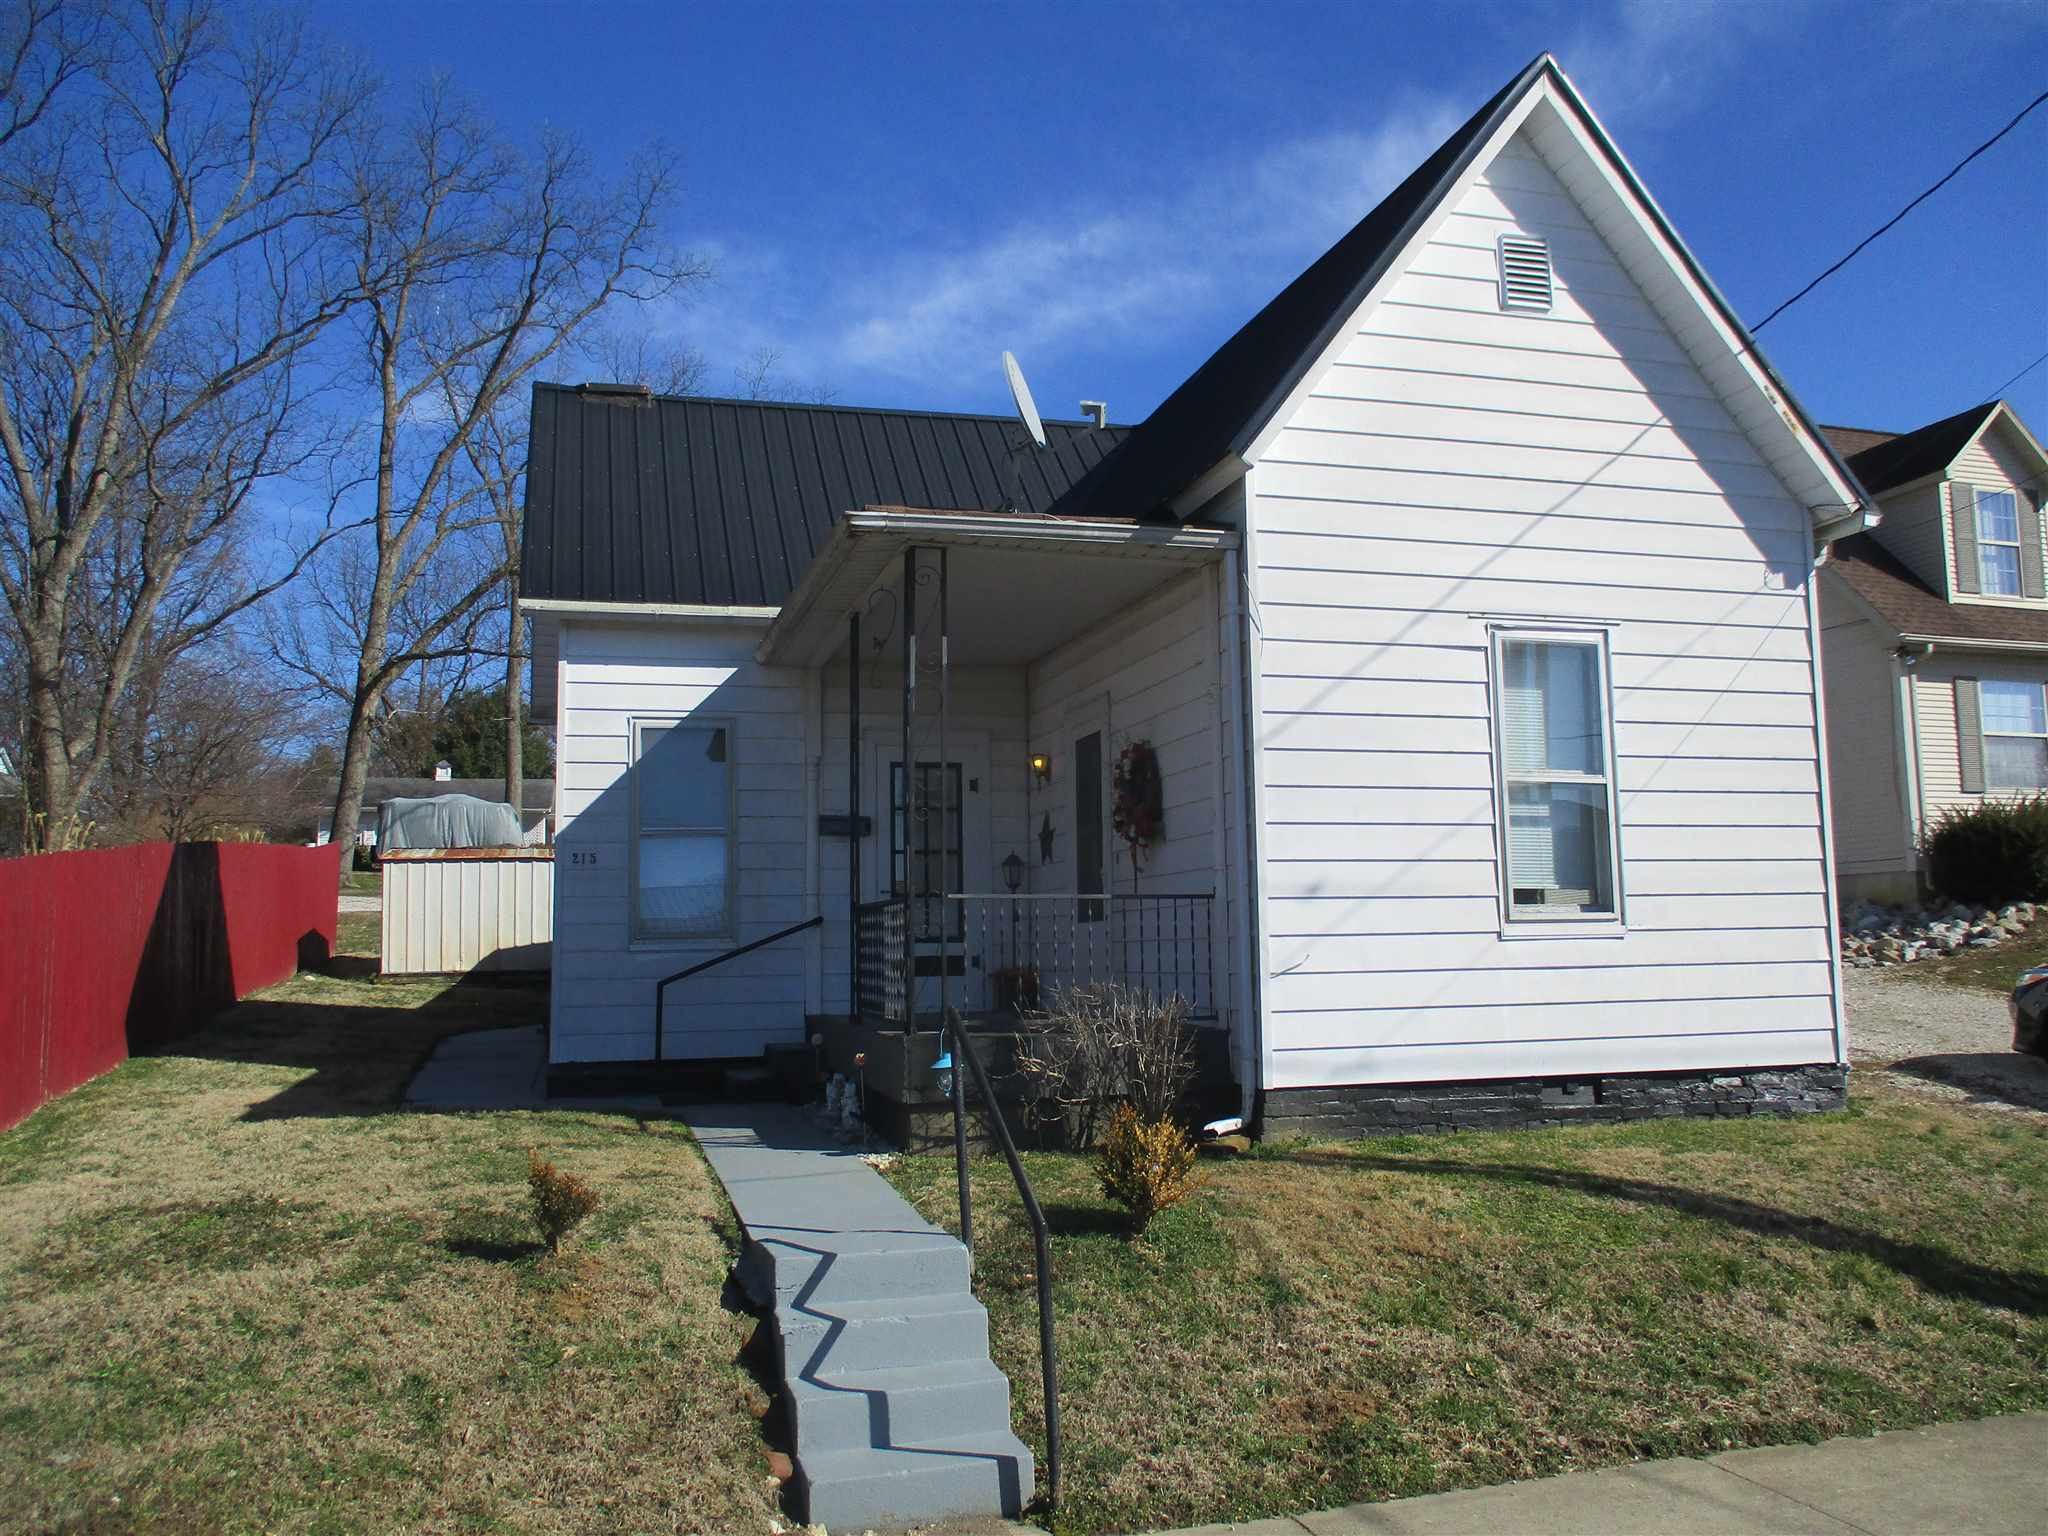 215 S 6th Street Rockport,IN 47635 202106474